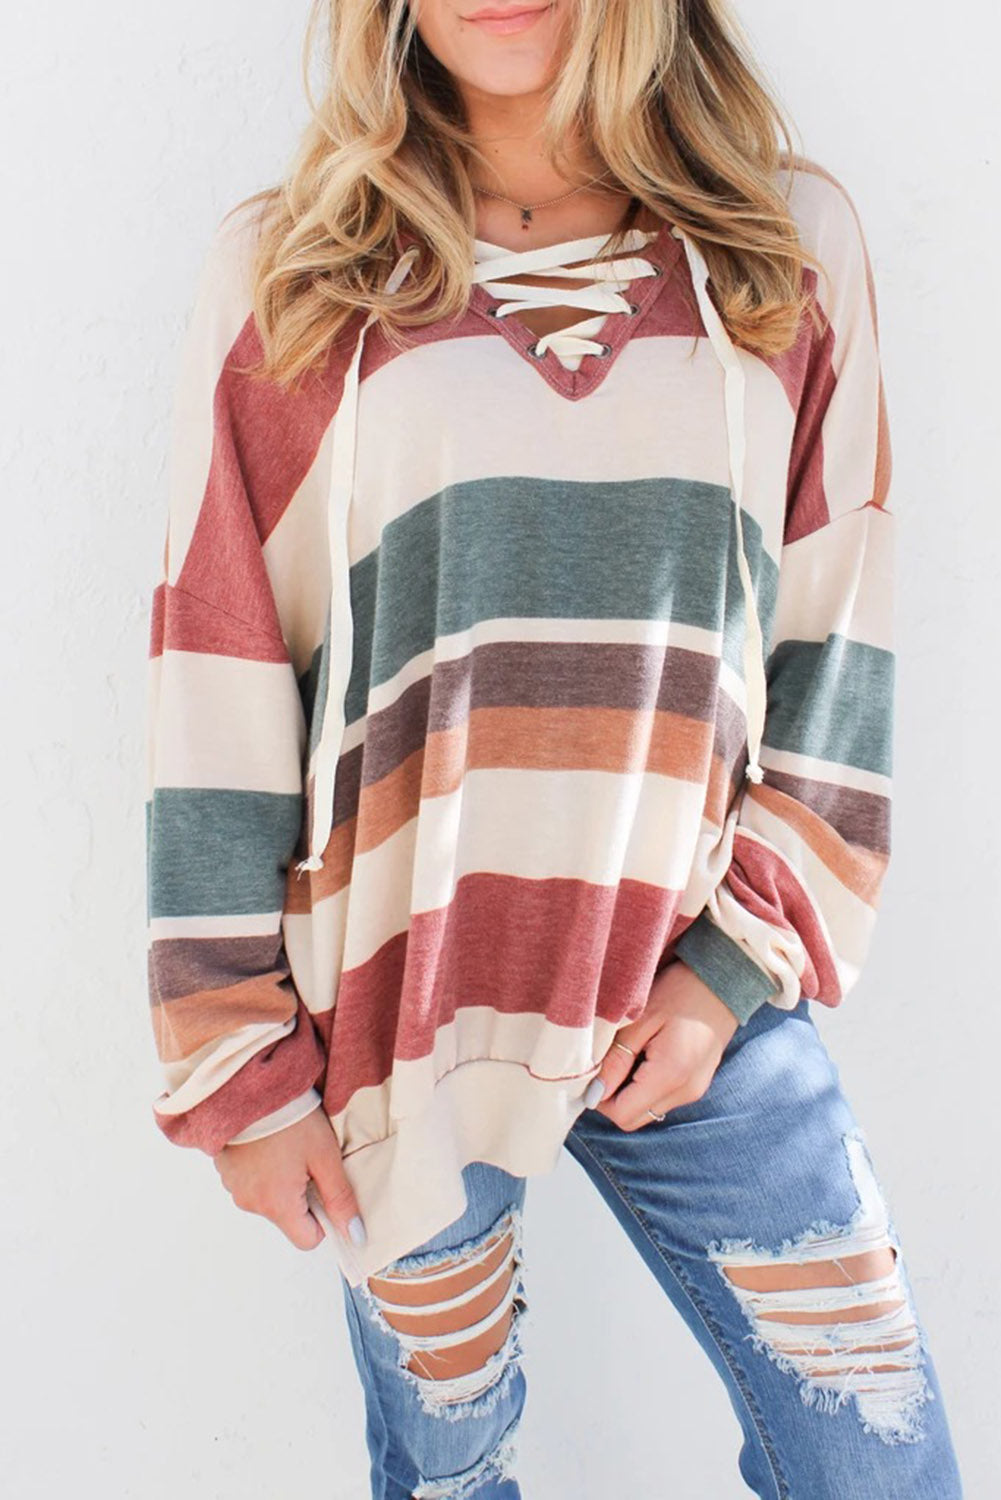 Fallon - Multi Colorblock Lace Up Sweatshirt